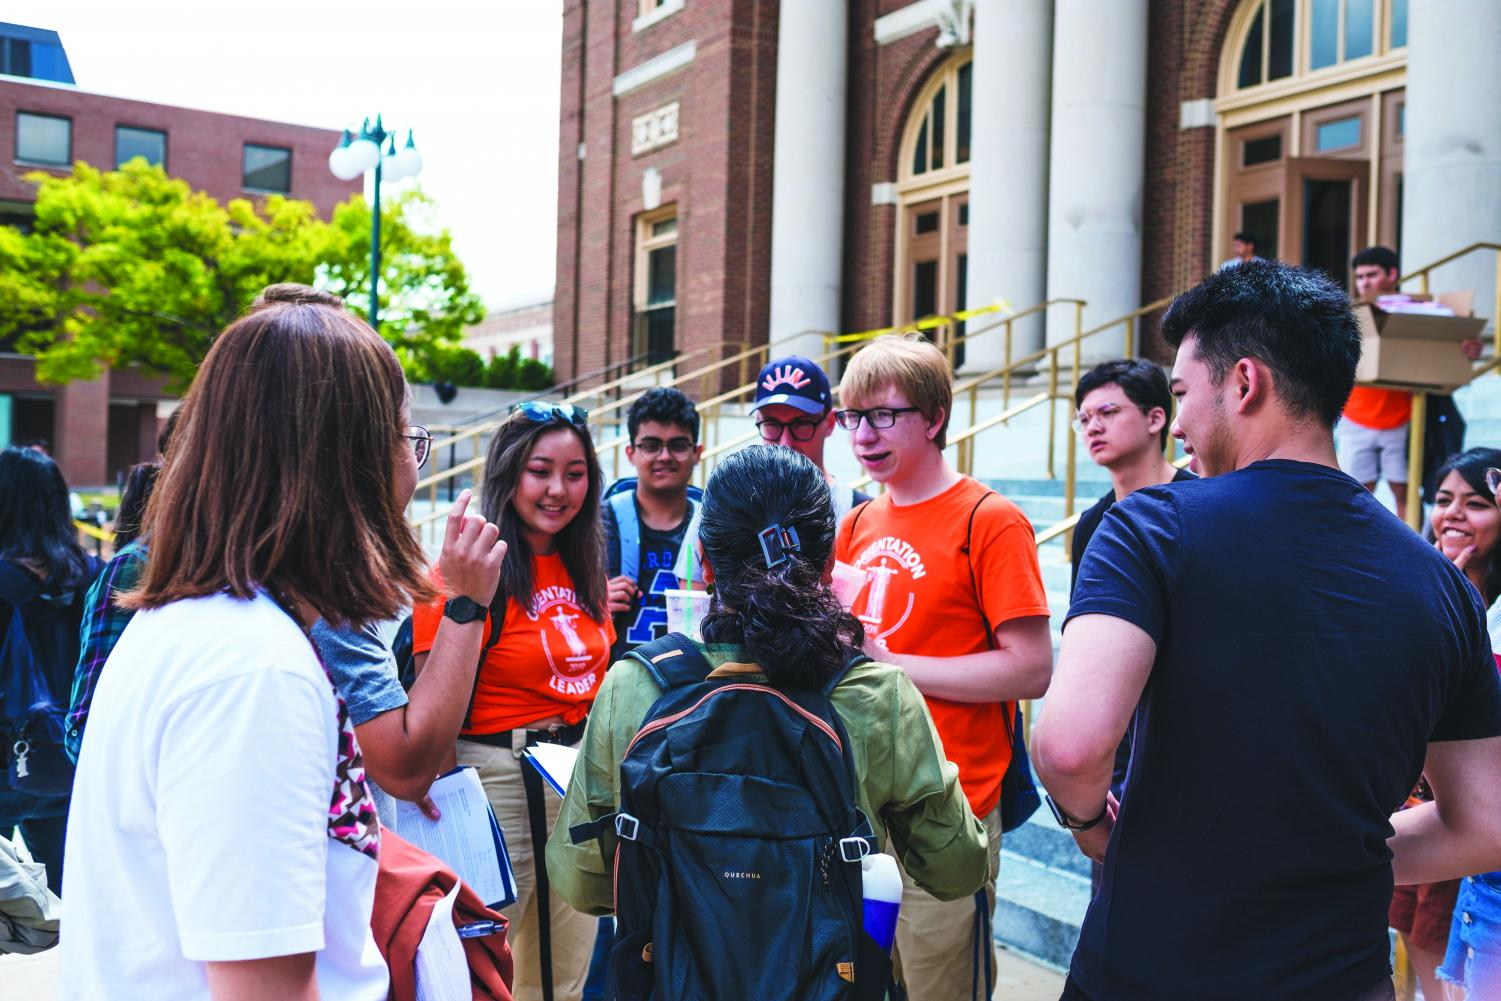 Freshmen and orientation leaders gather outside of Foellinger Auditorium  on Aug. 22. Current University students discuss what they hope to achieve by graduation while alumni reminisce on what they most enjoyed during their time on campus.